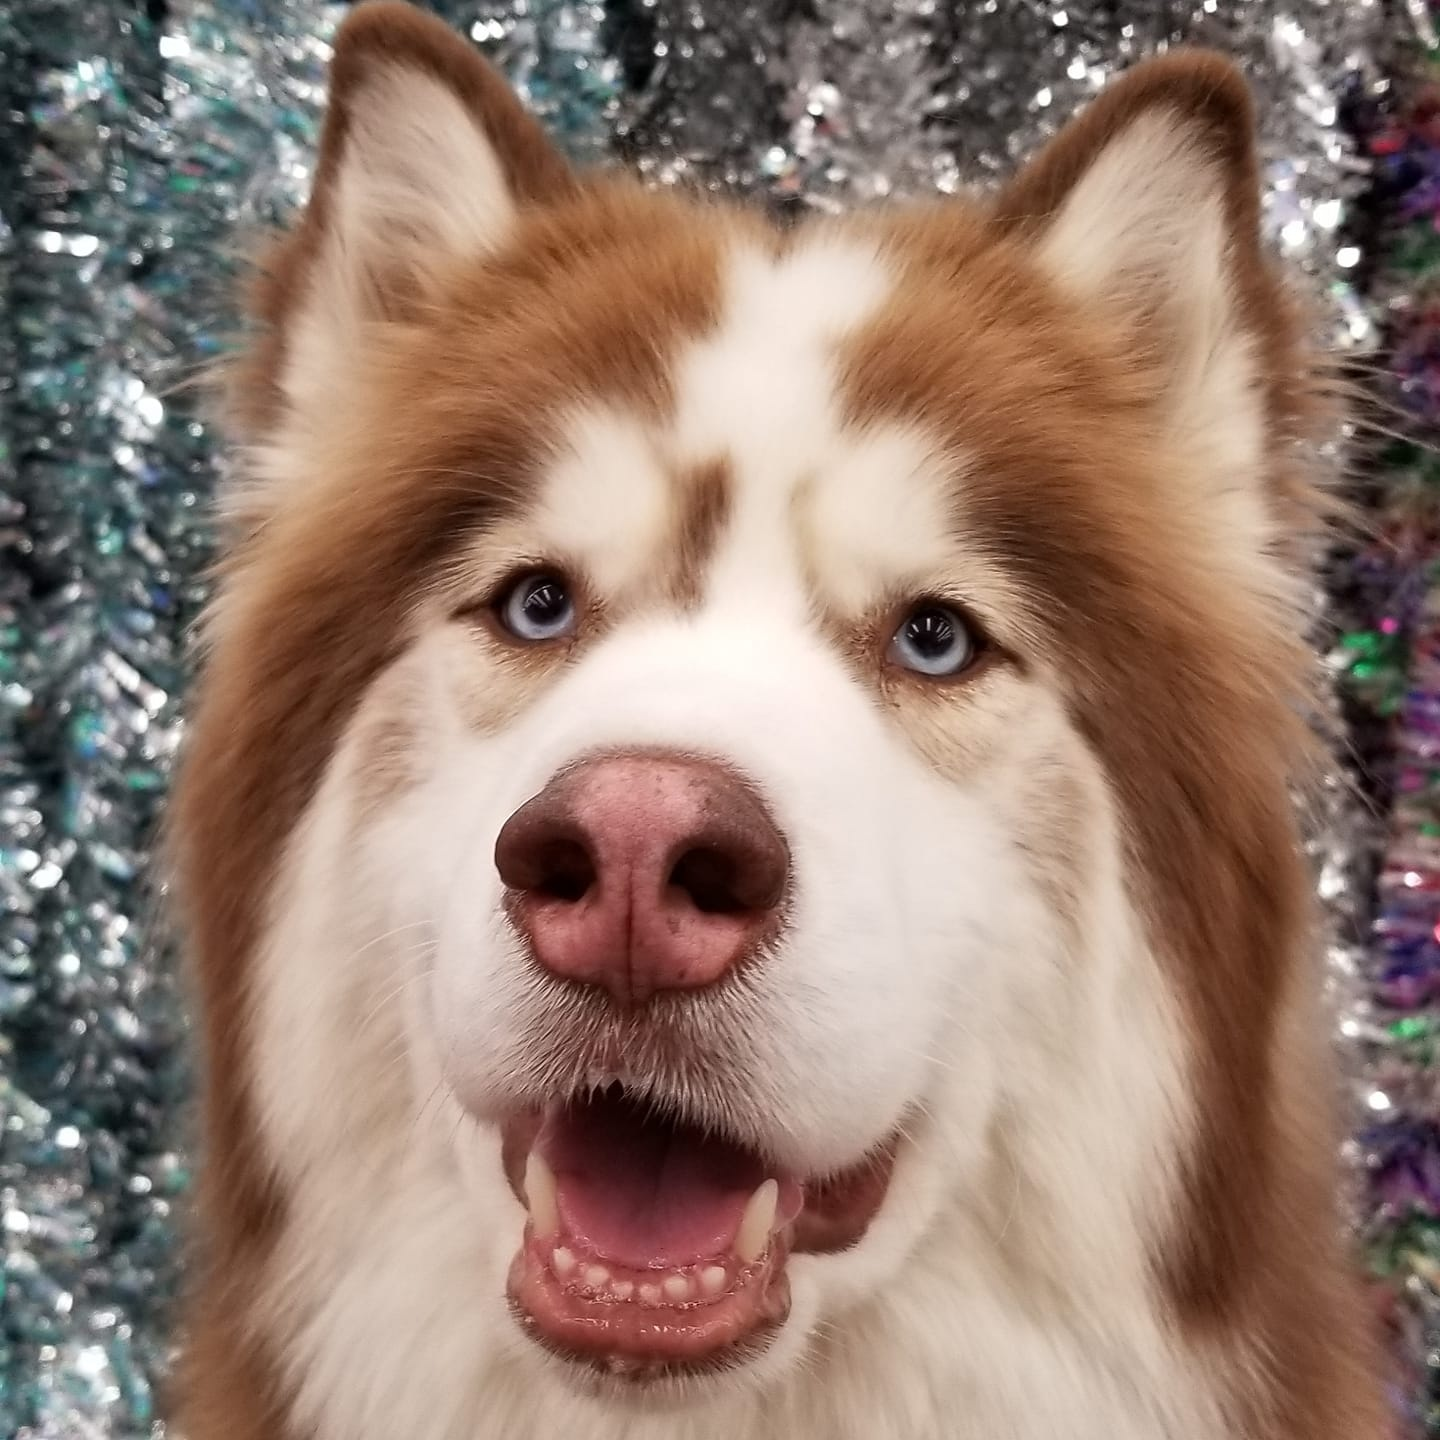 14. Ajax - This is Ajax Thor. 4 year old Siberian Husky. He is a service dog who loves to give a little